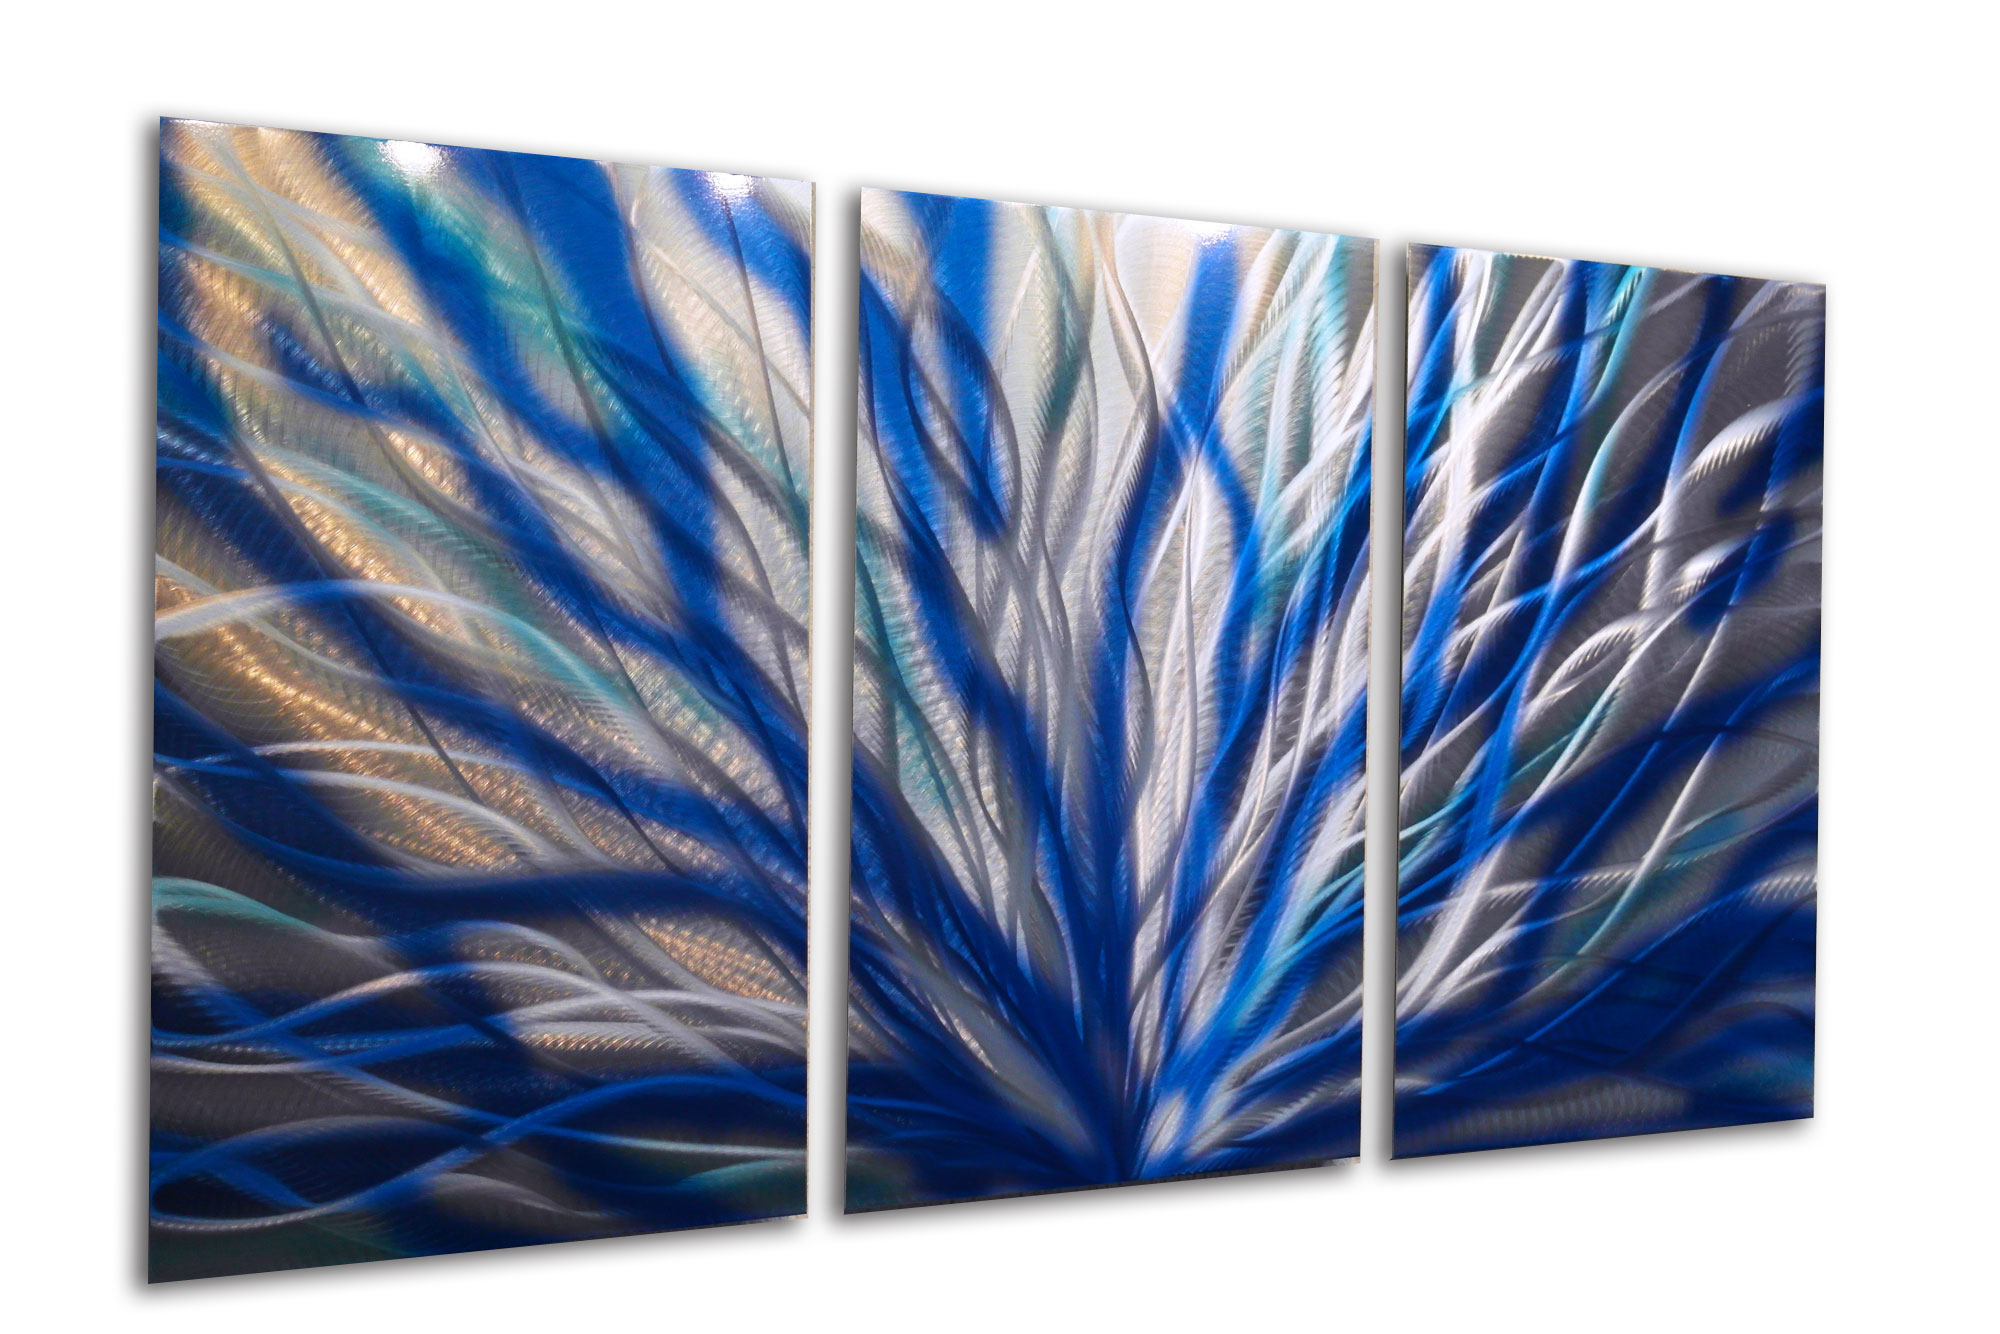 Blue Metal Wall Art New Radiance Blue 47 V2  Metal Wall Art Abstract Sculpture Modern Design Inspiration